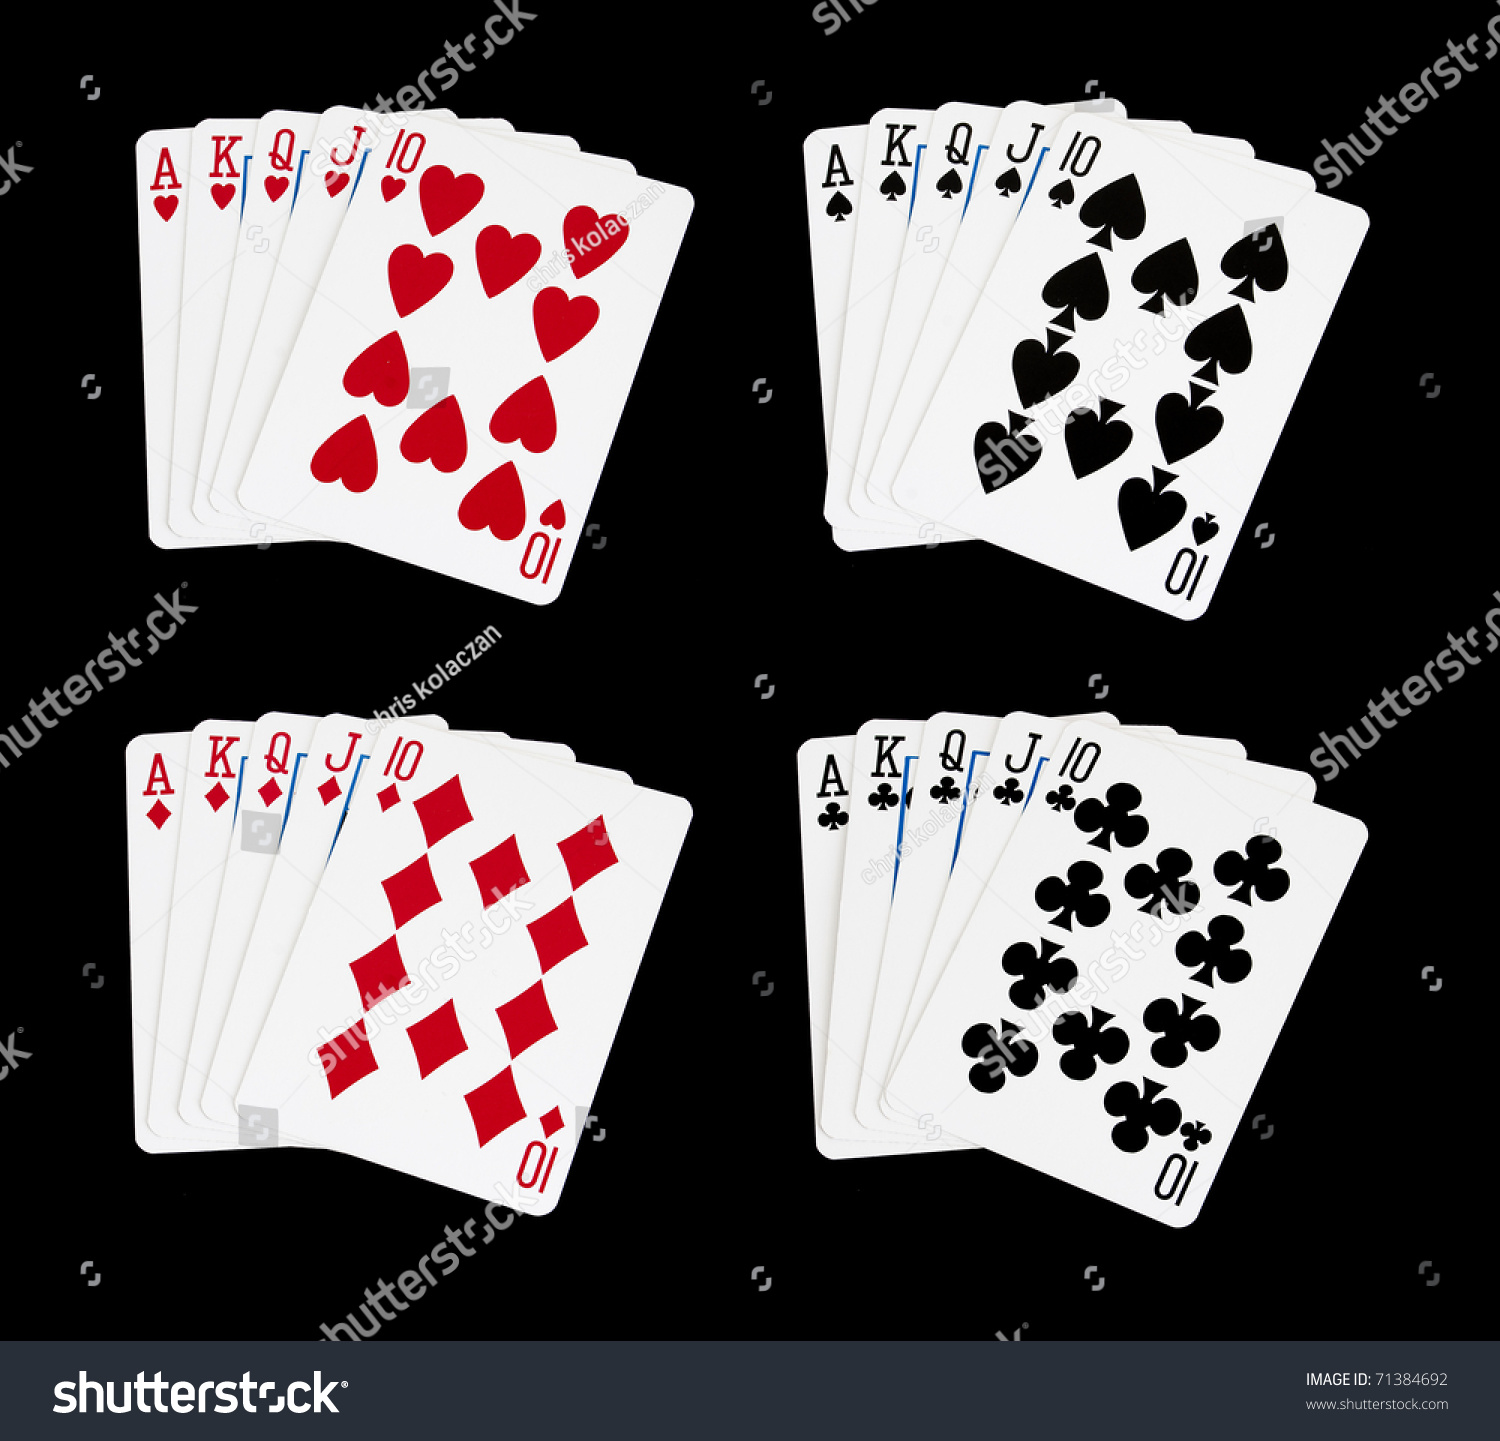 What's the best poker hand possible